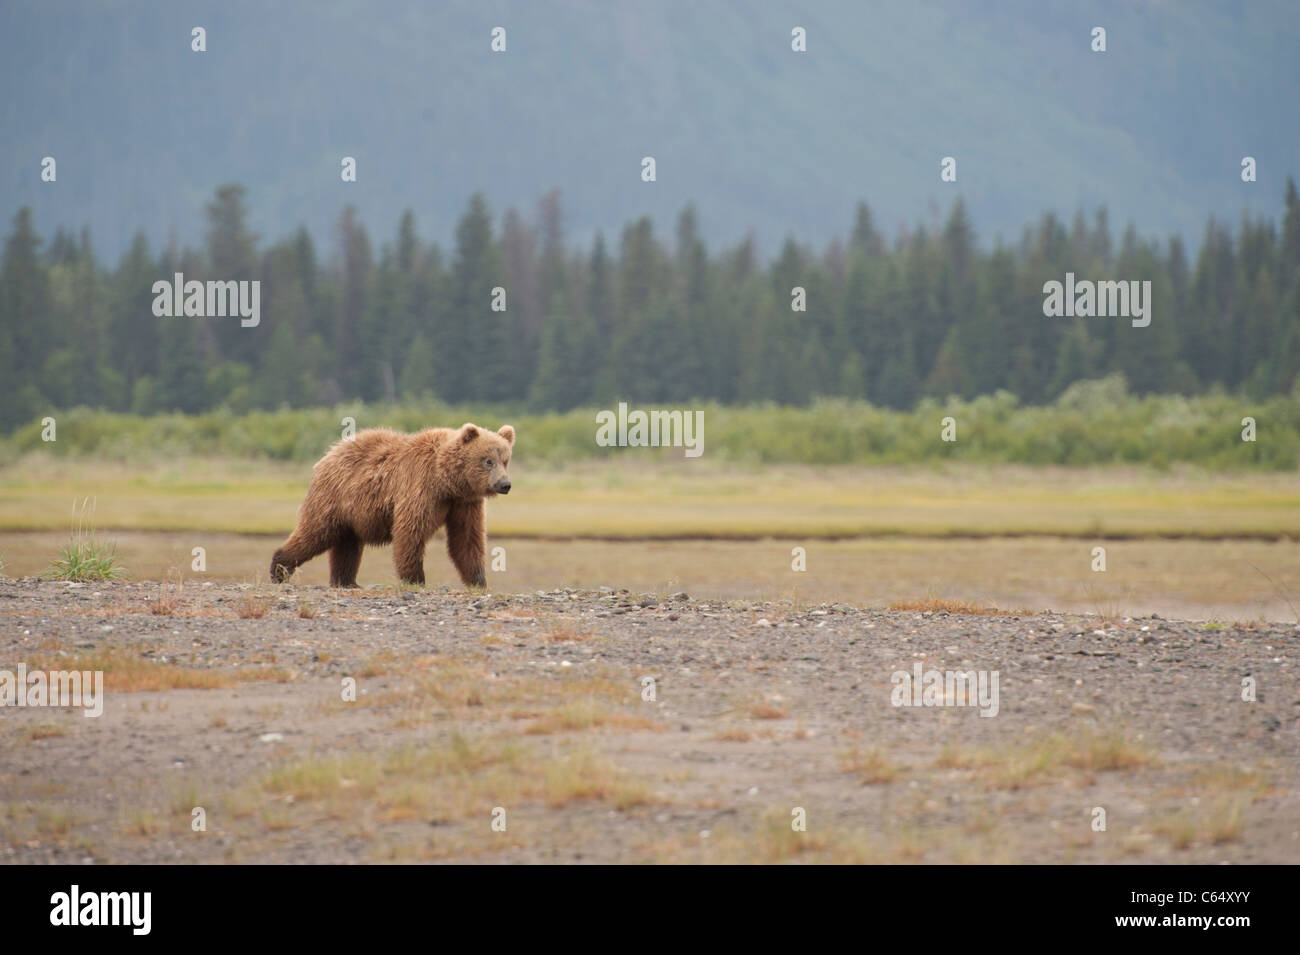 Brown Grizzly Bear walking along Beach - Stock Image